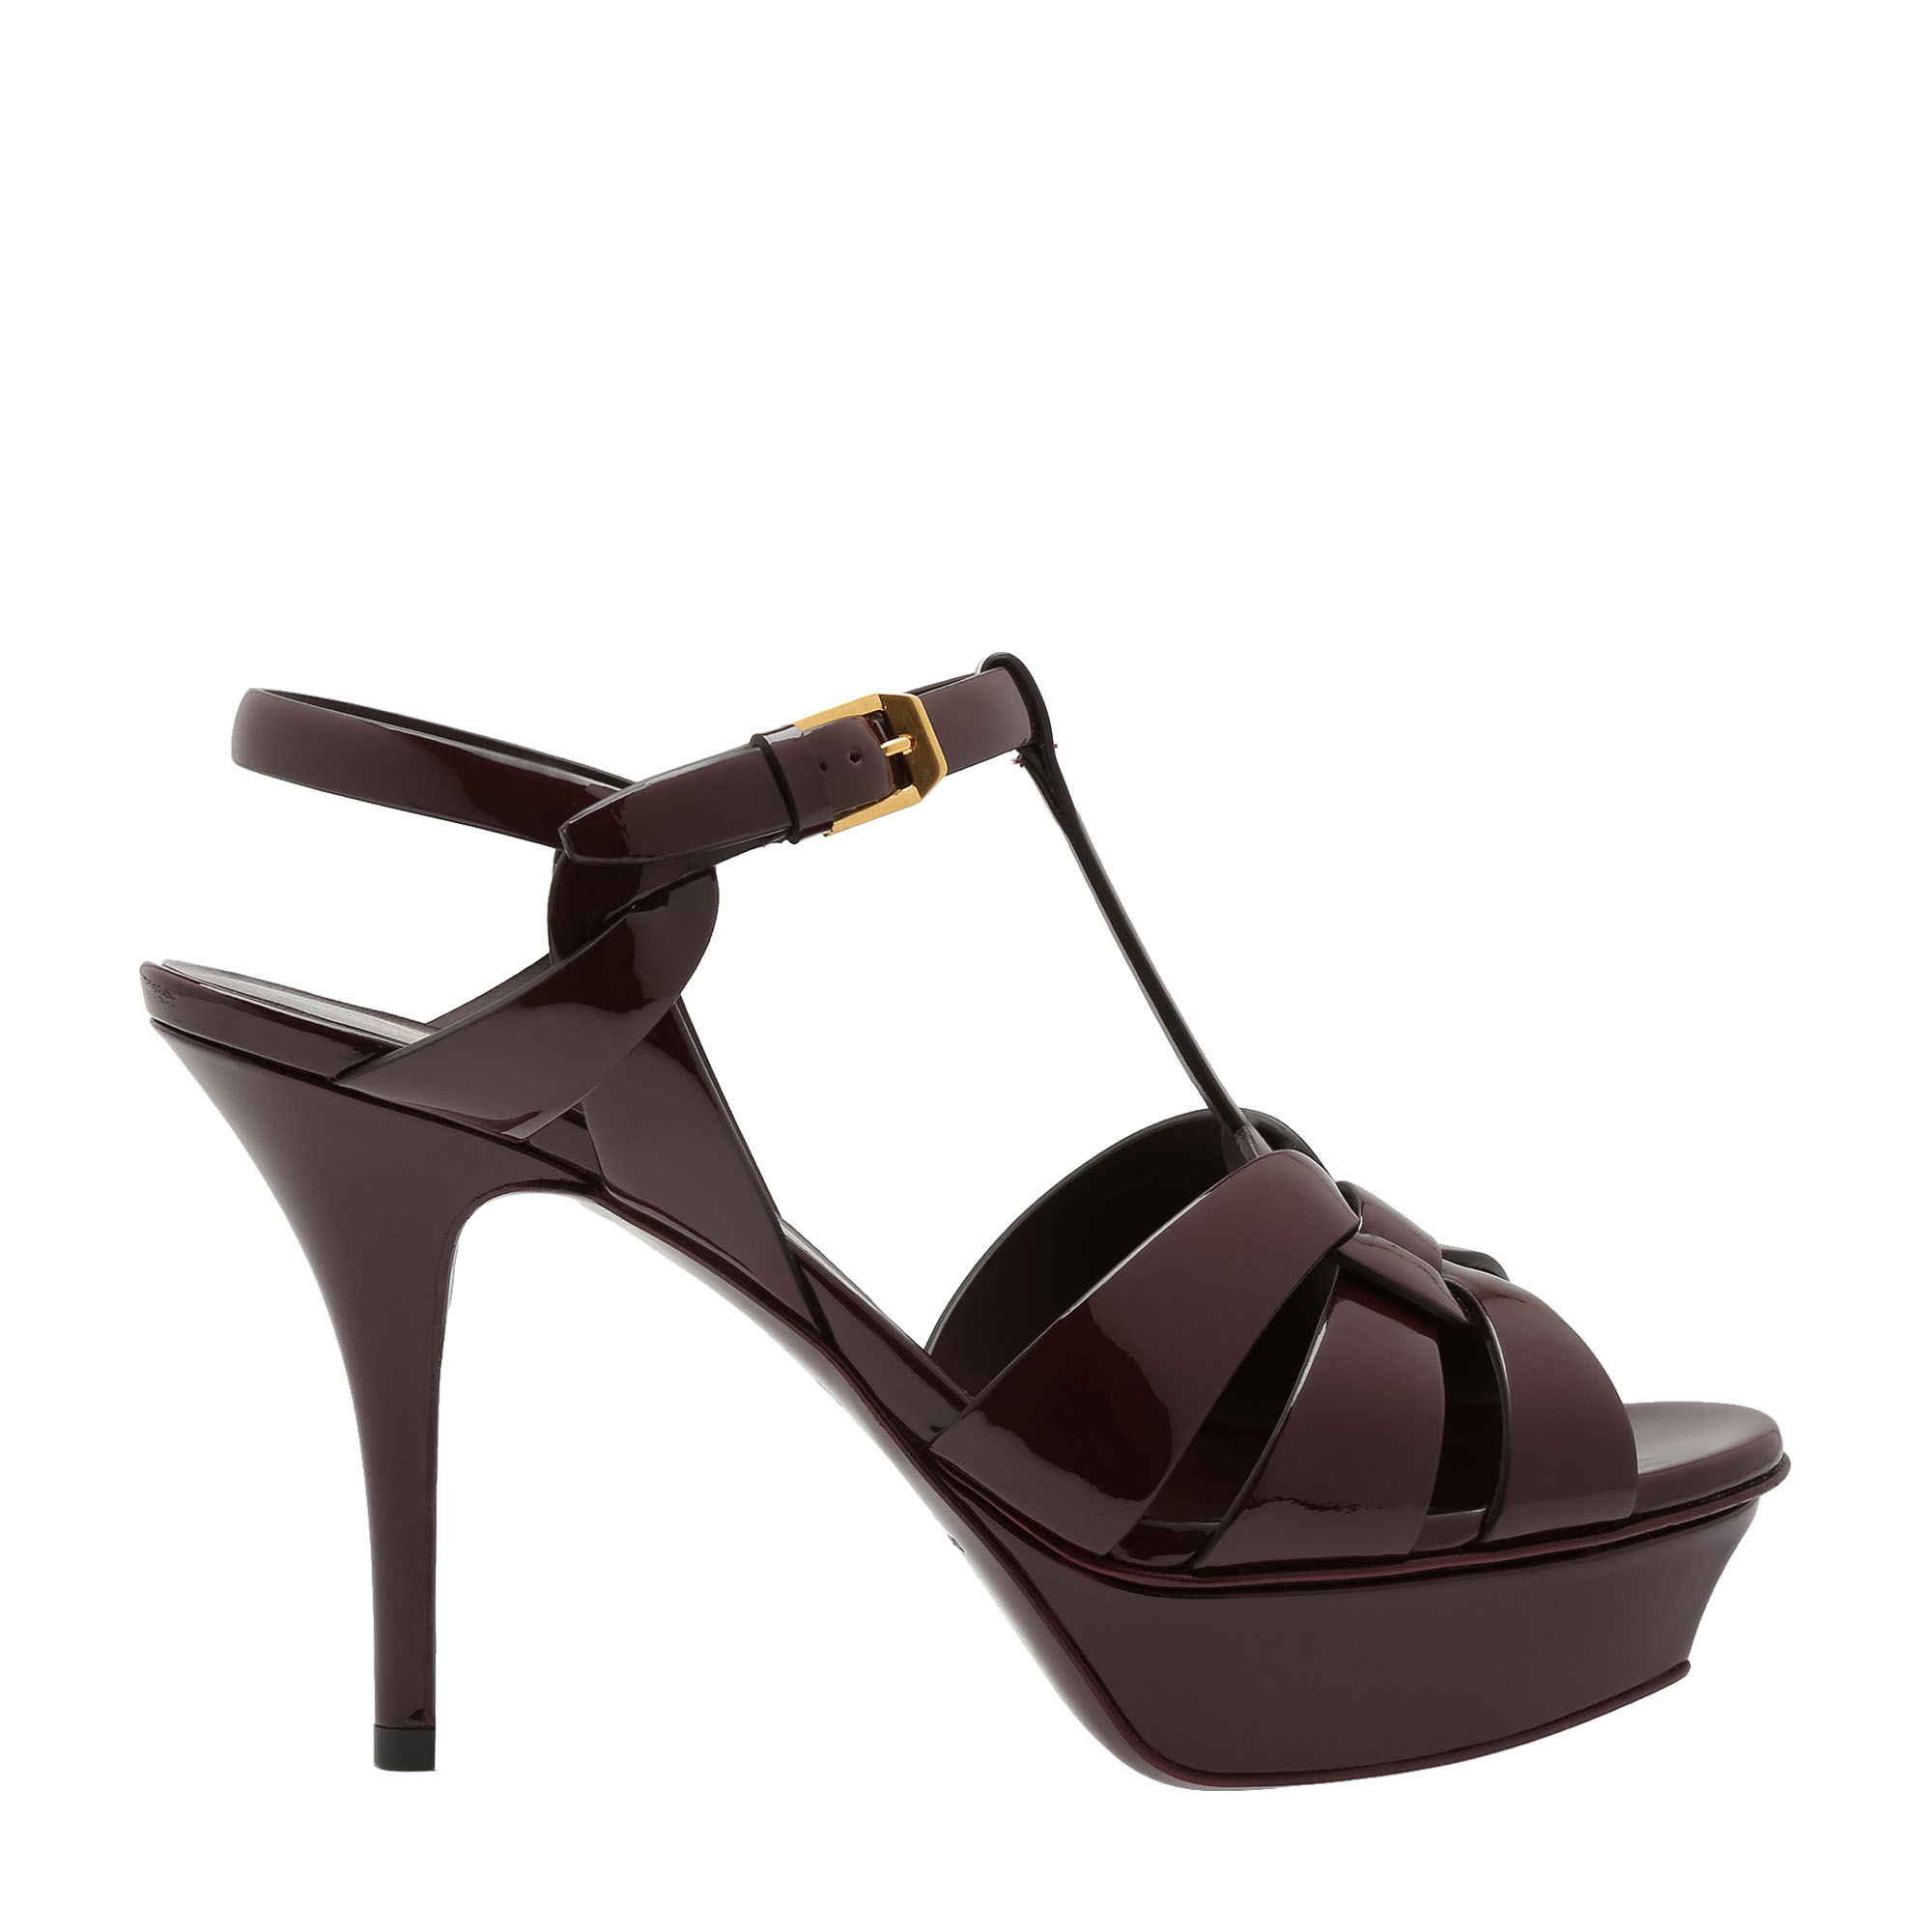 Tribute leather sandals